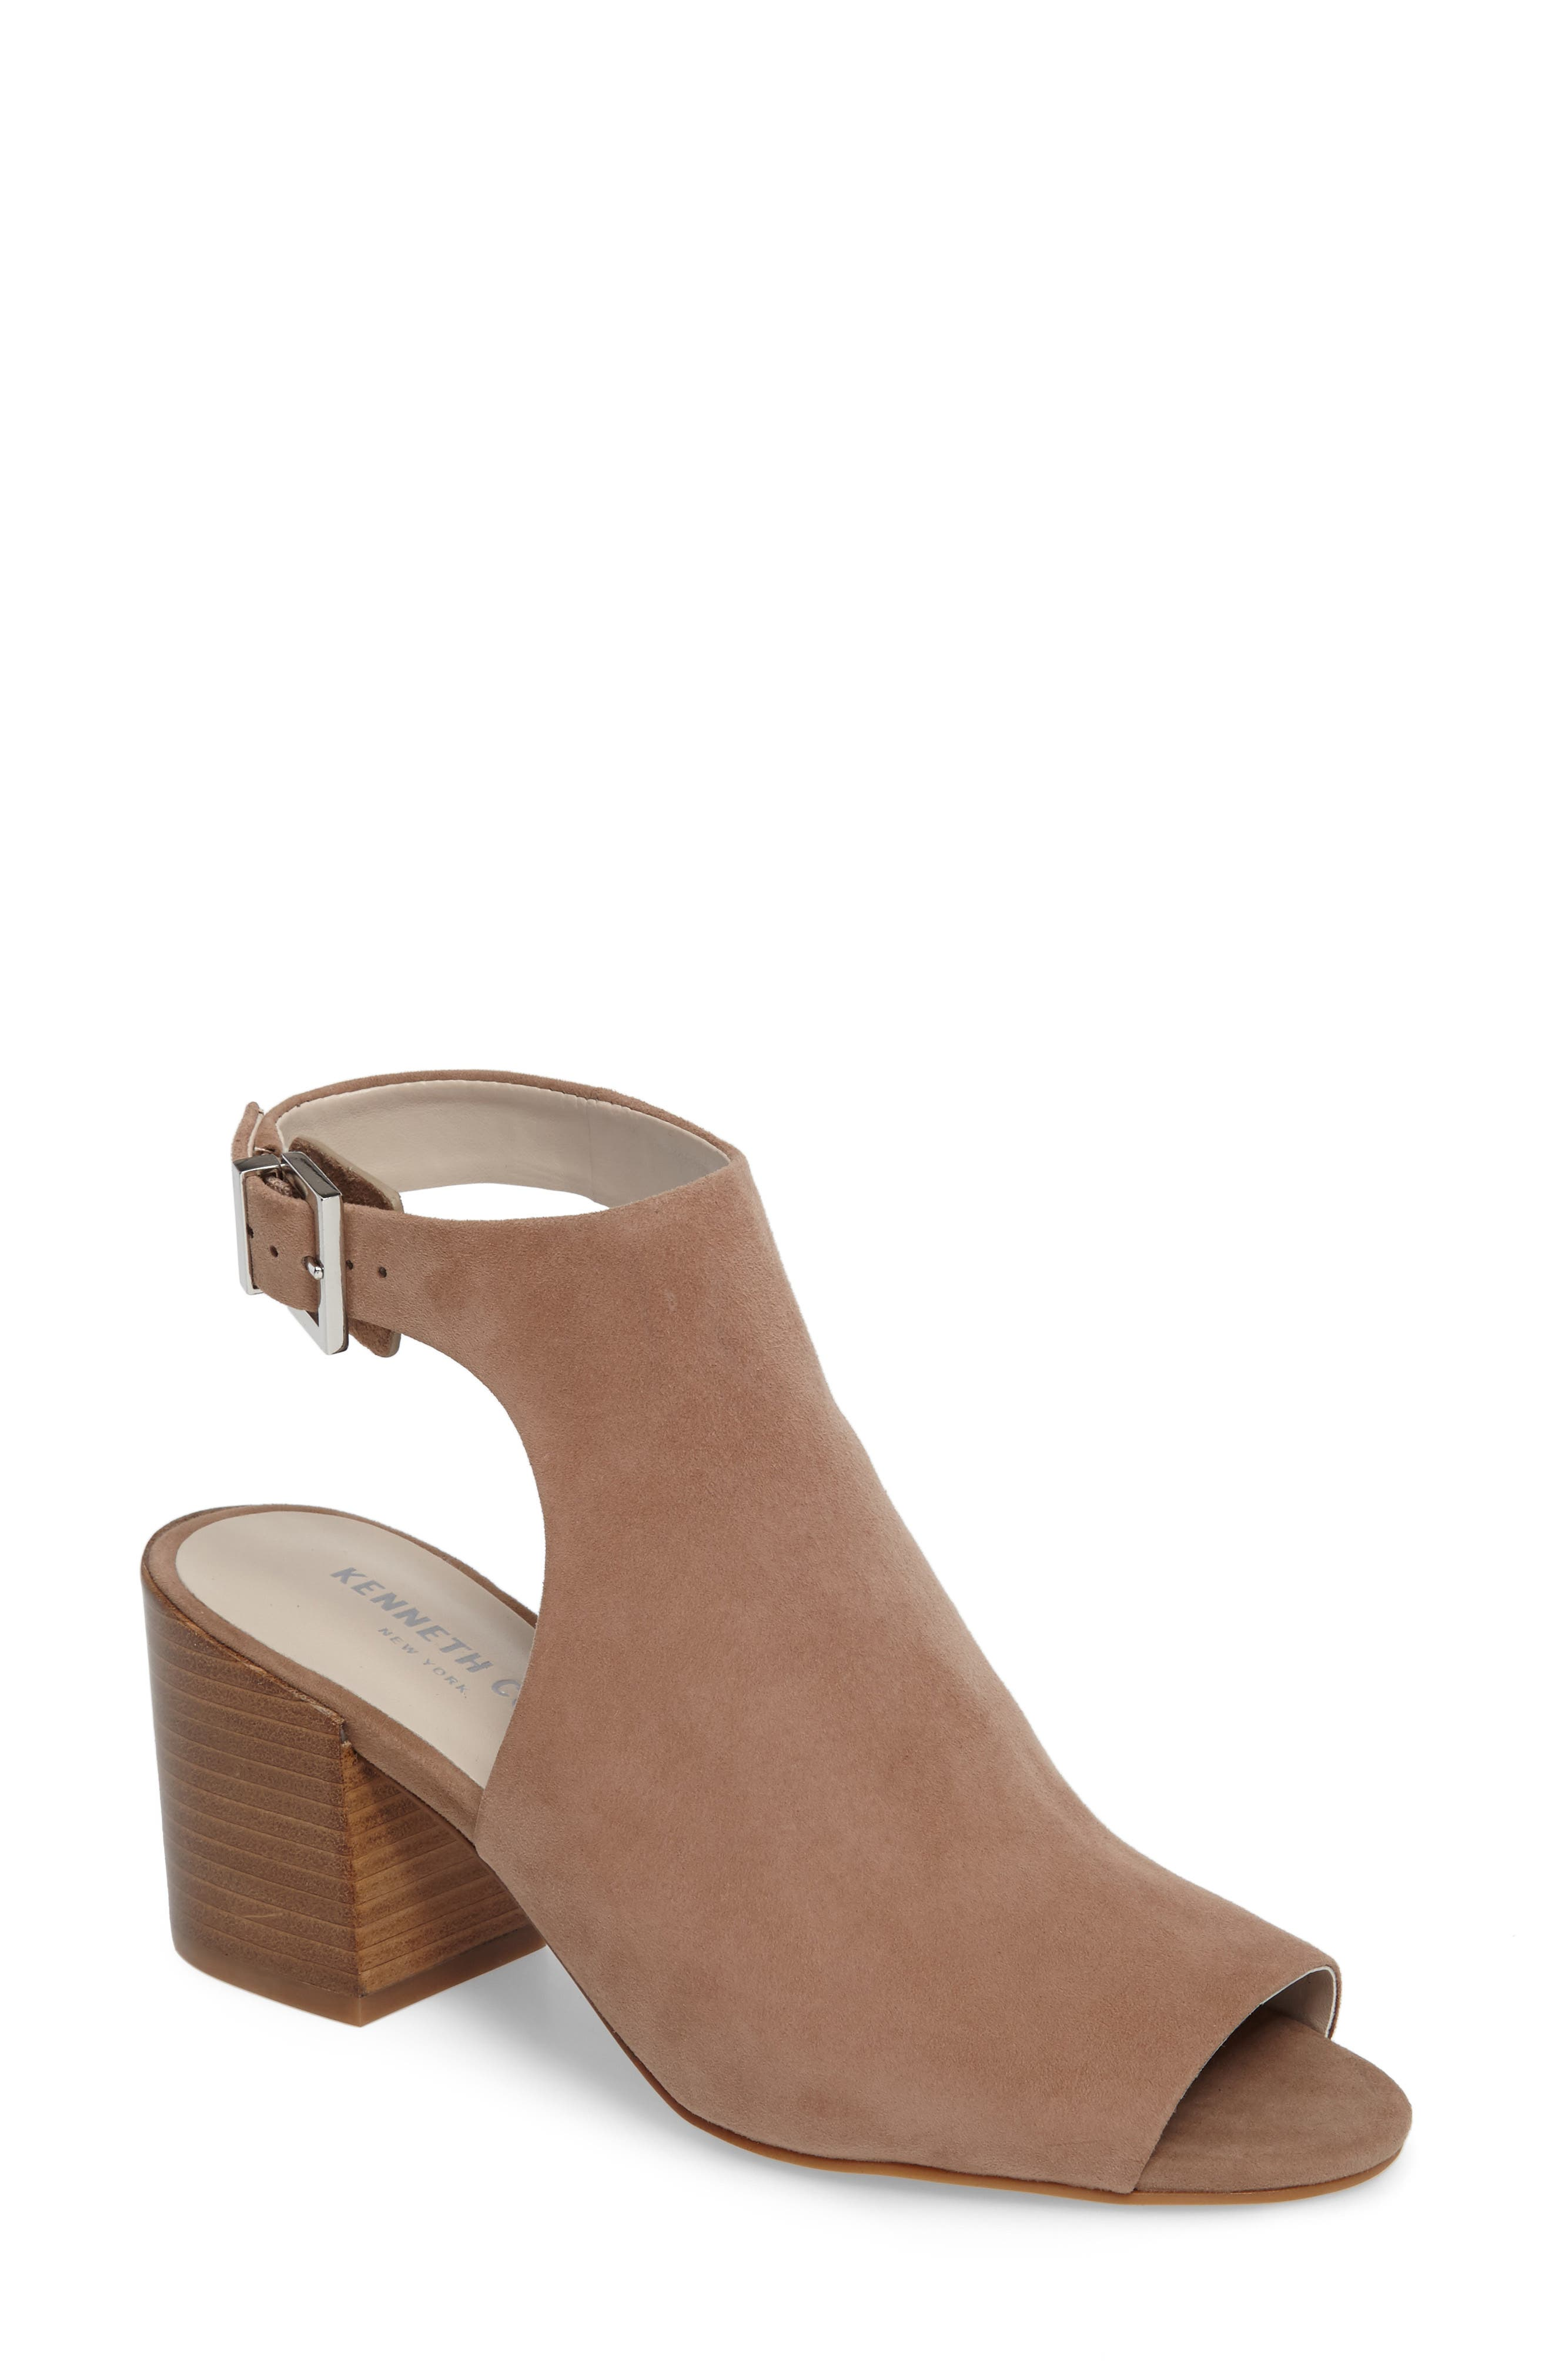 'Val' Sandal,                         Main,                         color,